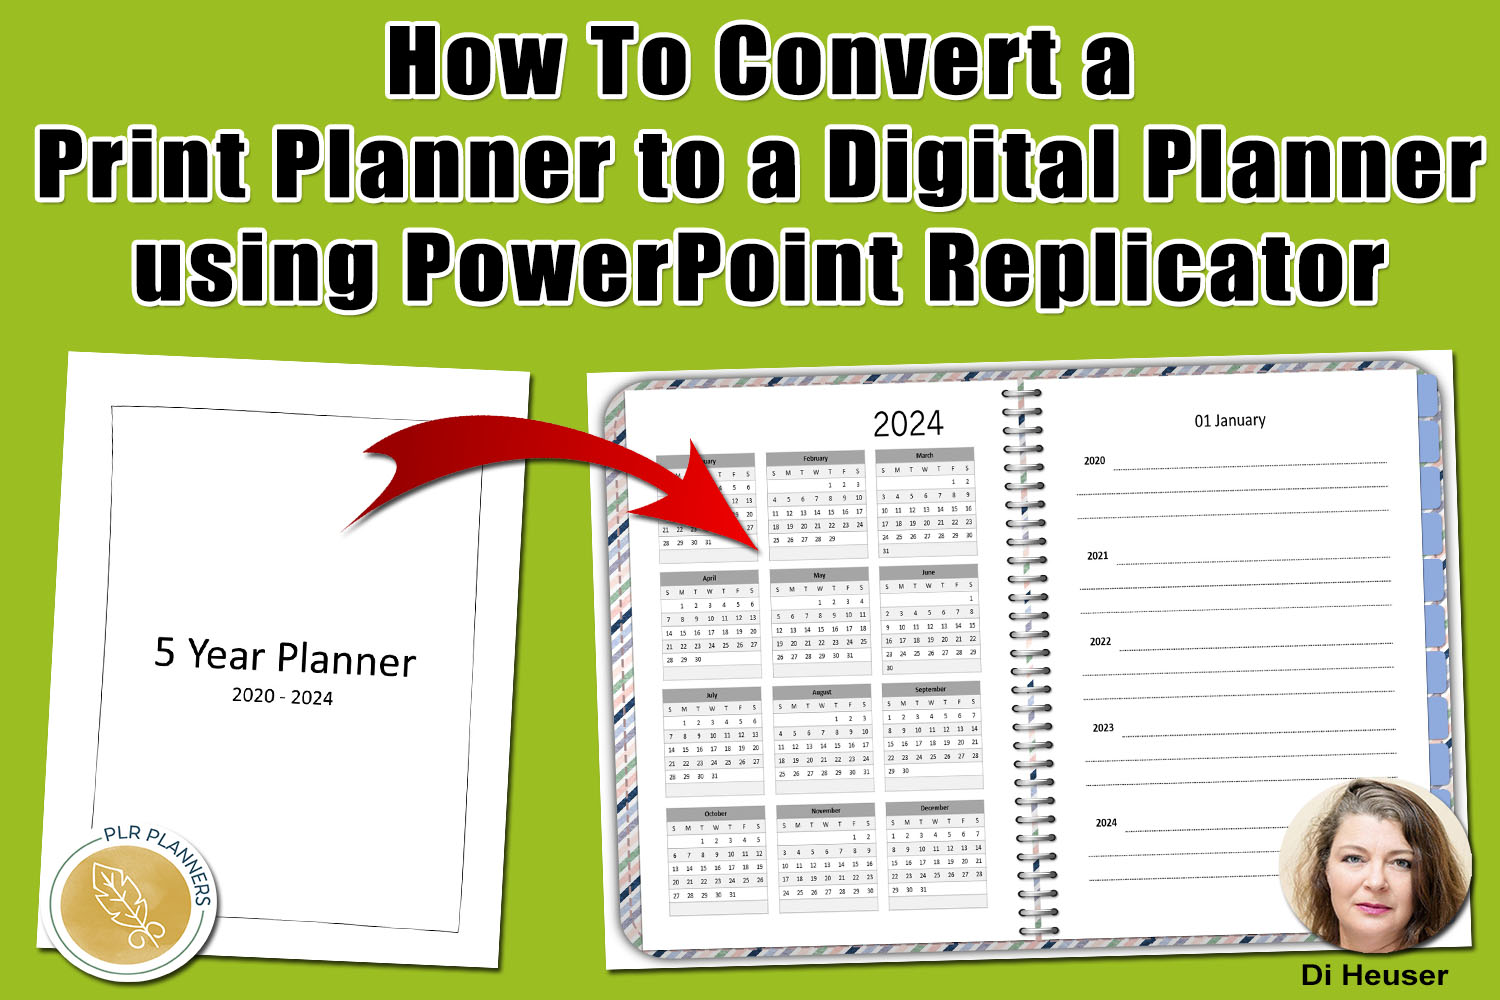 How To Convert a Print Planner to a Digital Planner using PowerPoint Replicator